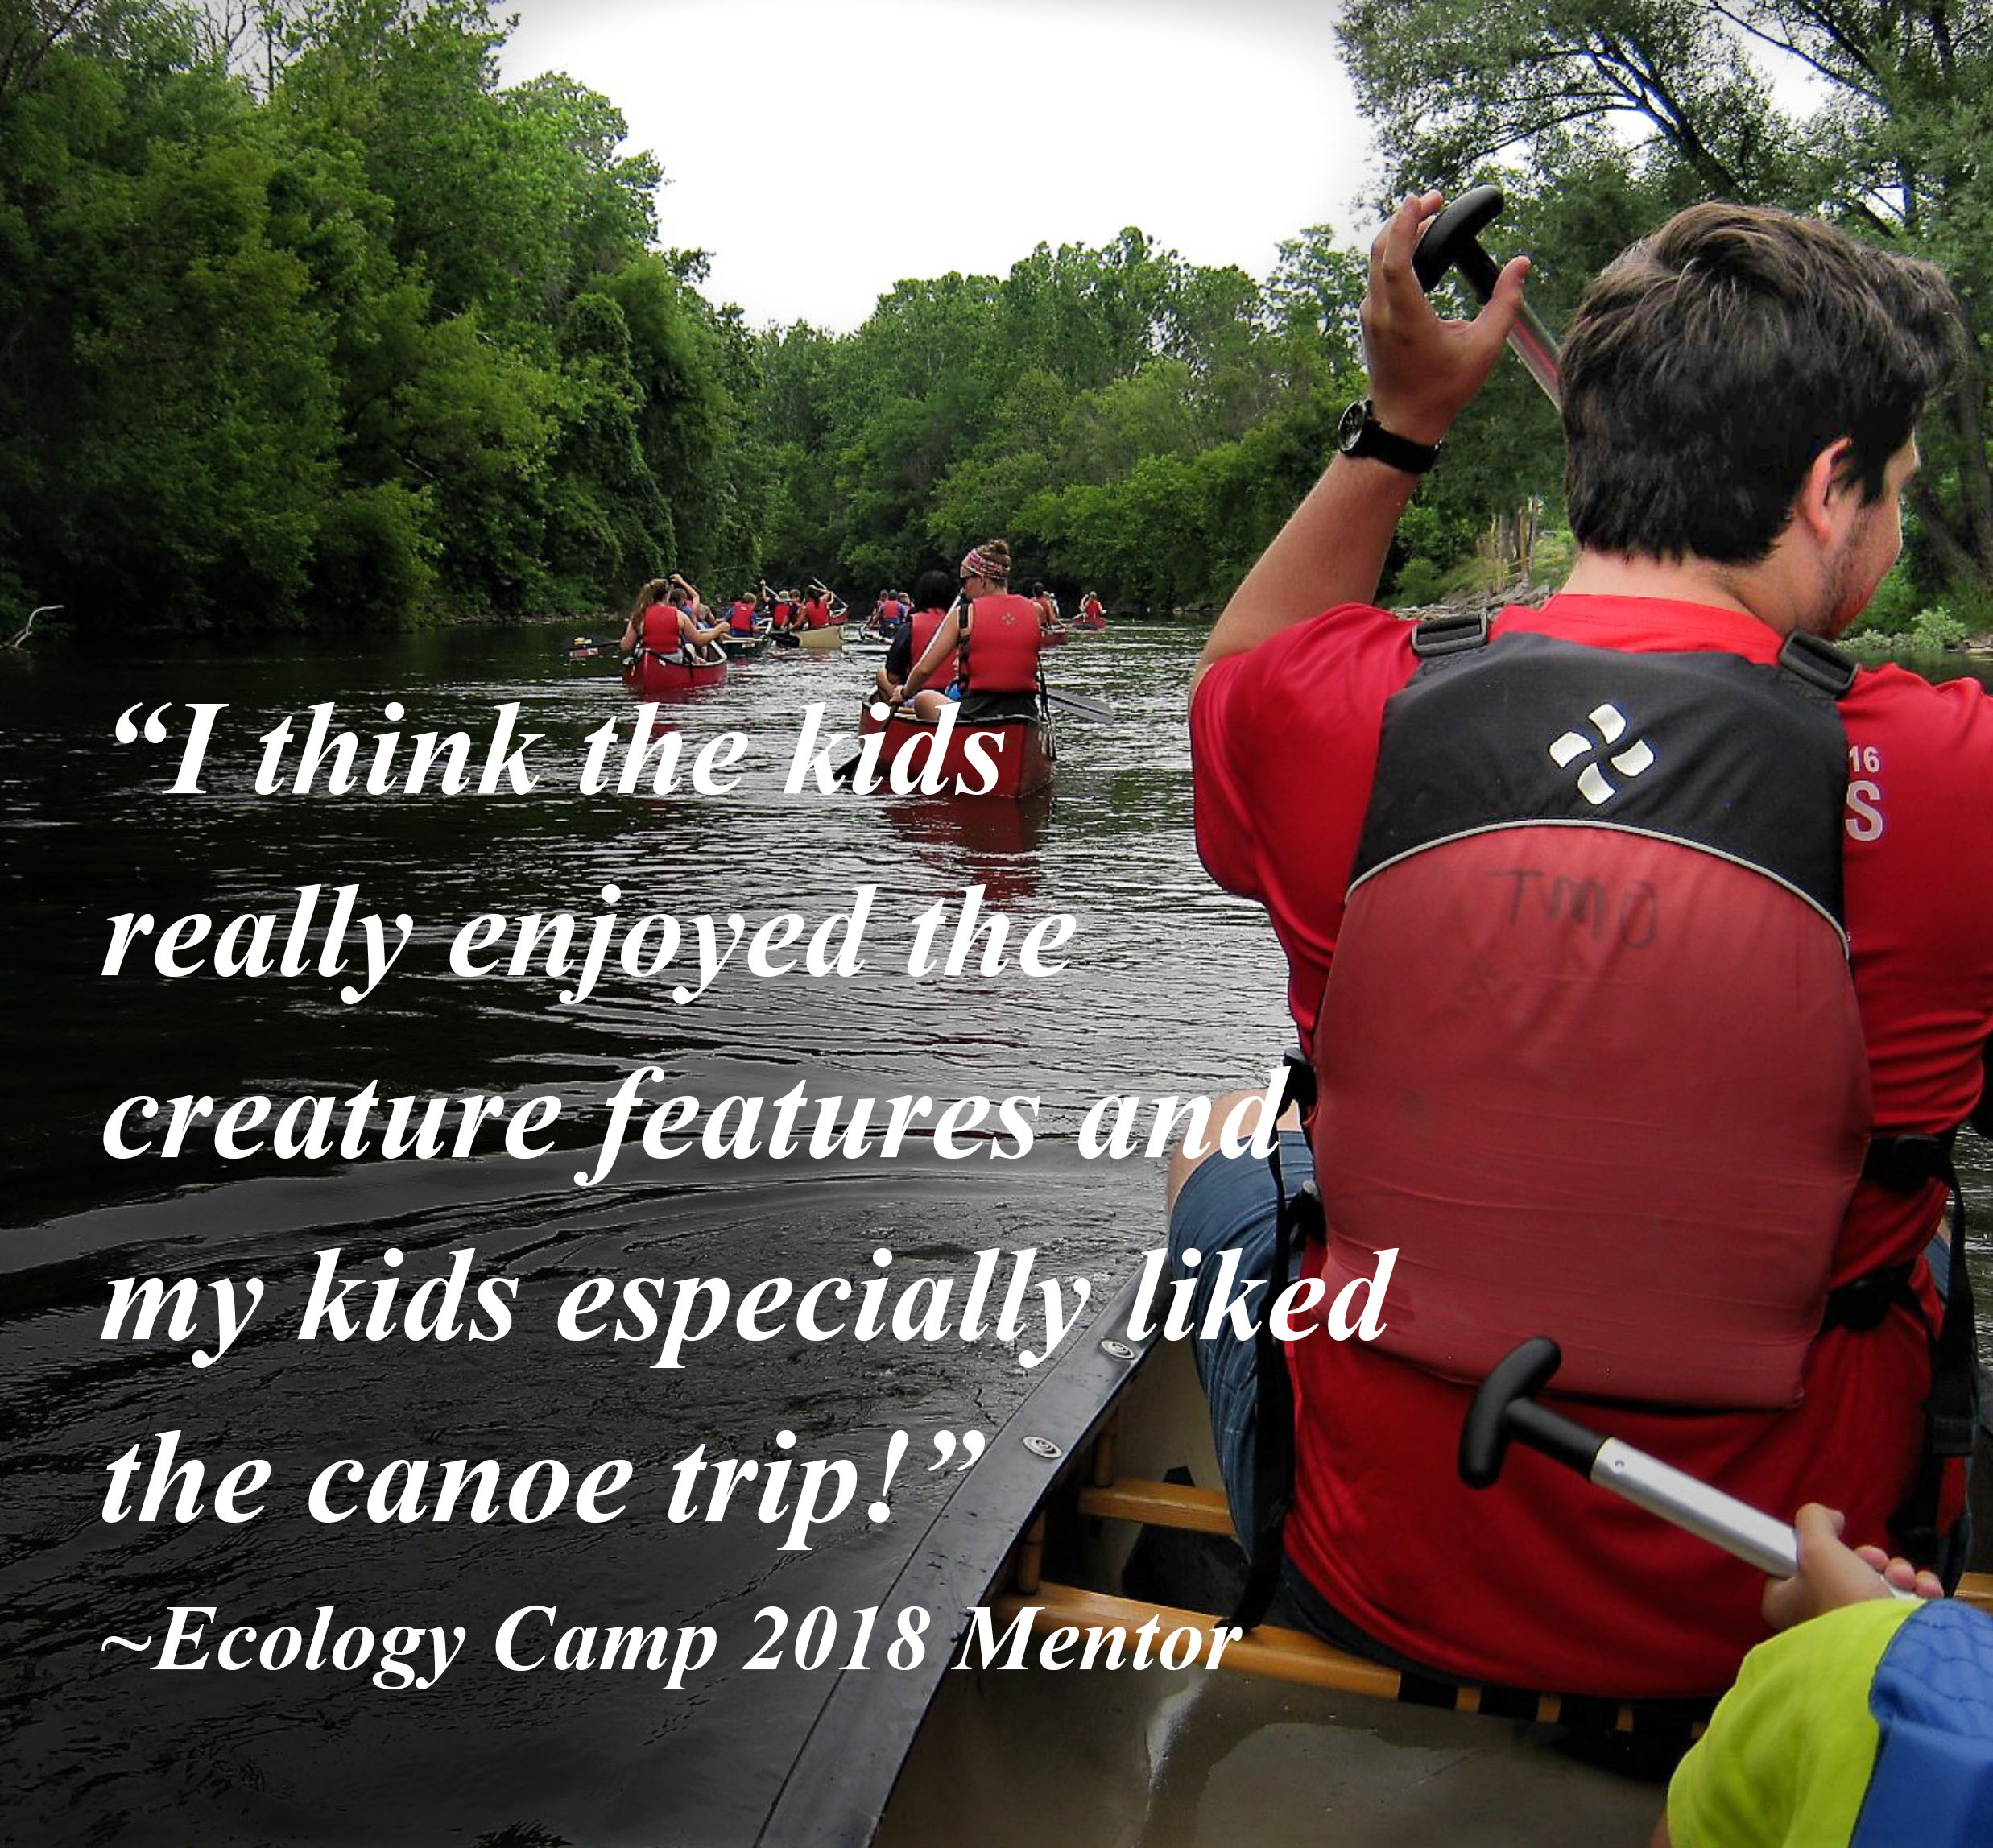 I think the kids really enjoyed the creature features, and my kids especially liked the canoe trip! 2018 Ecology Camp Mentor